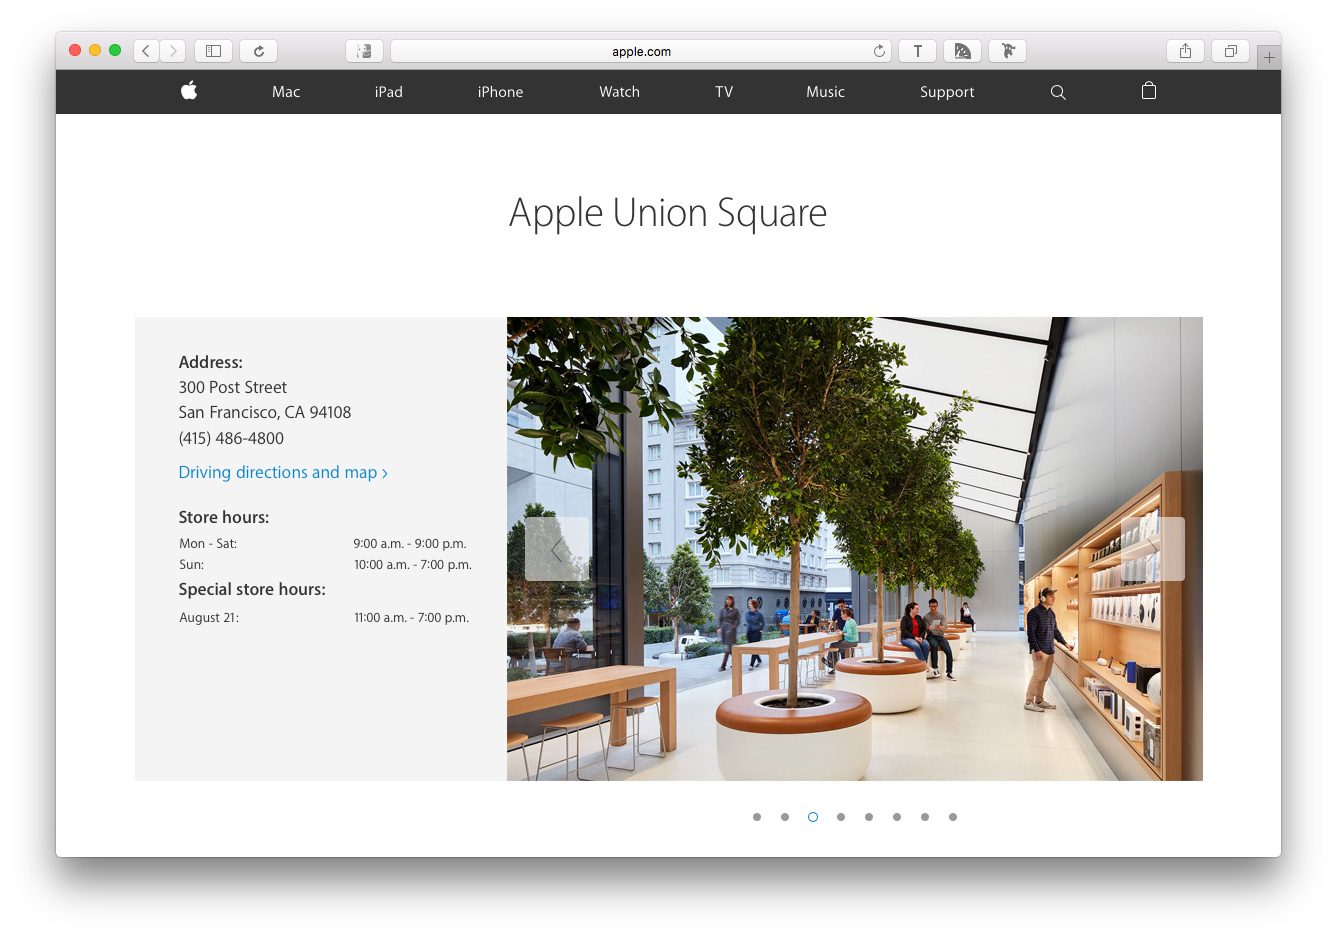 Apple Union Square